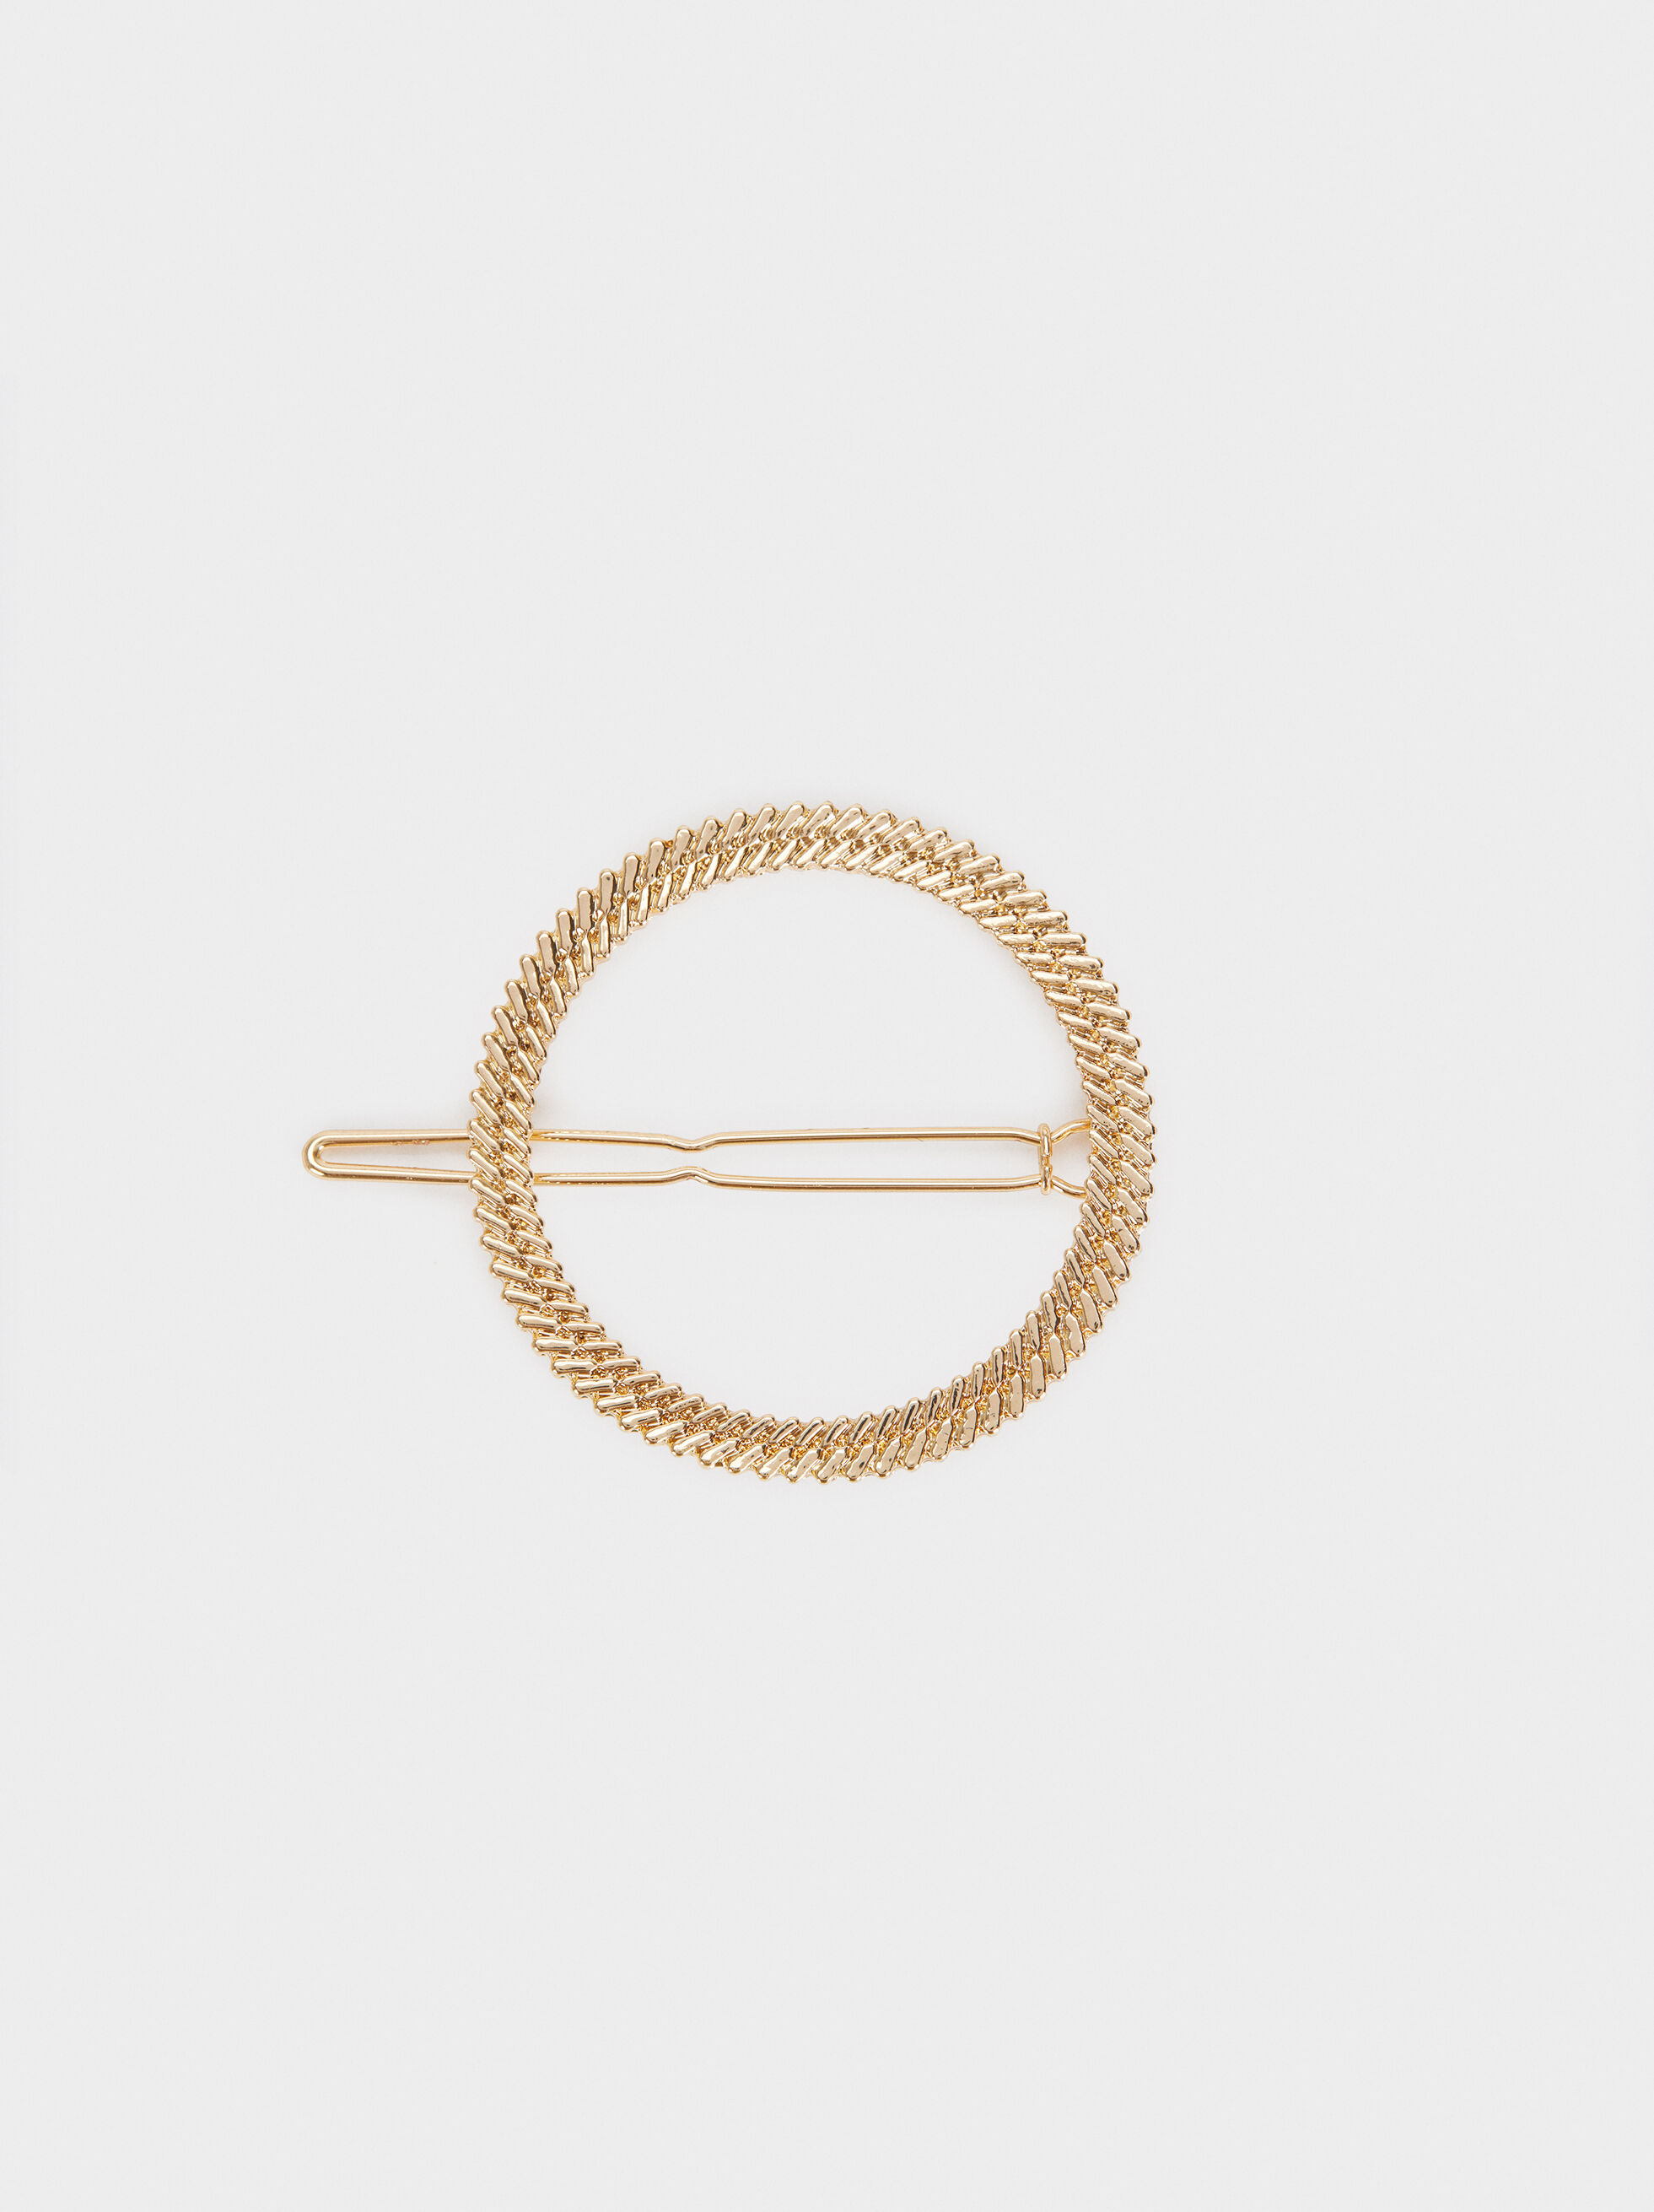 Circular Metallic Hair Slide, Golden, hi-res